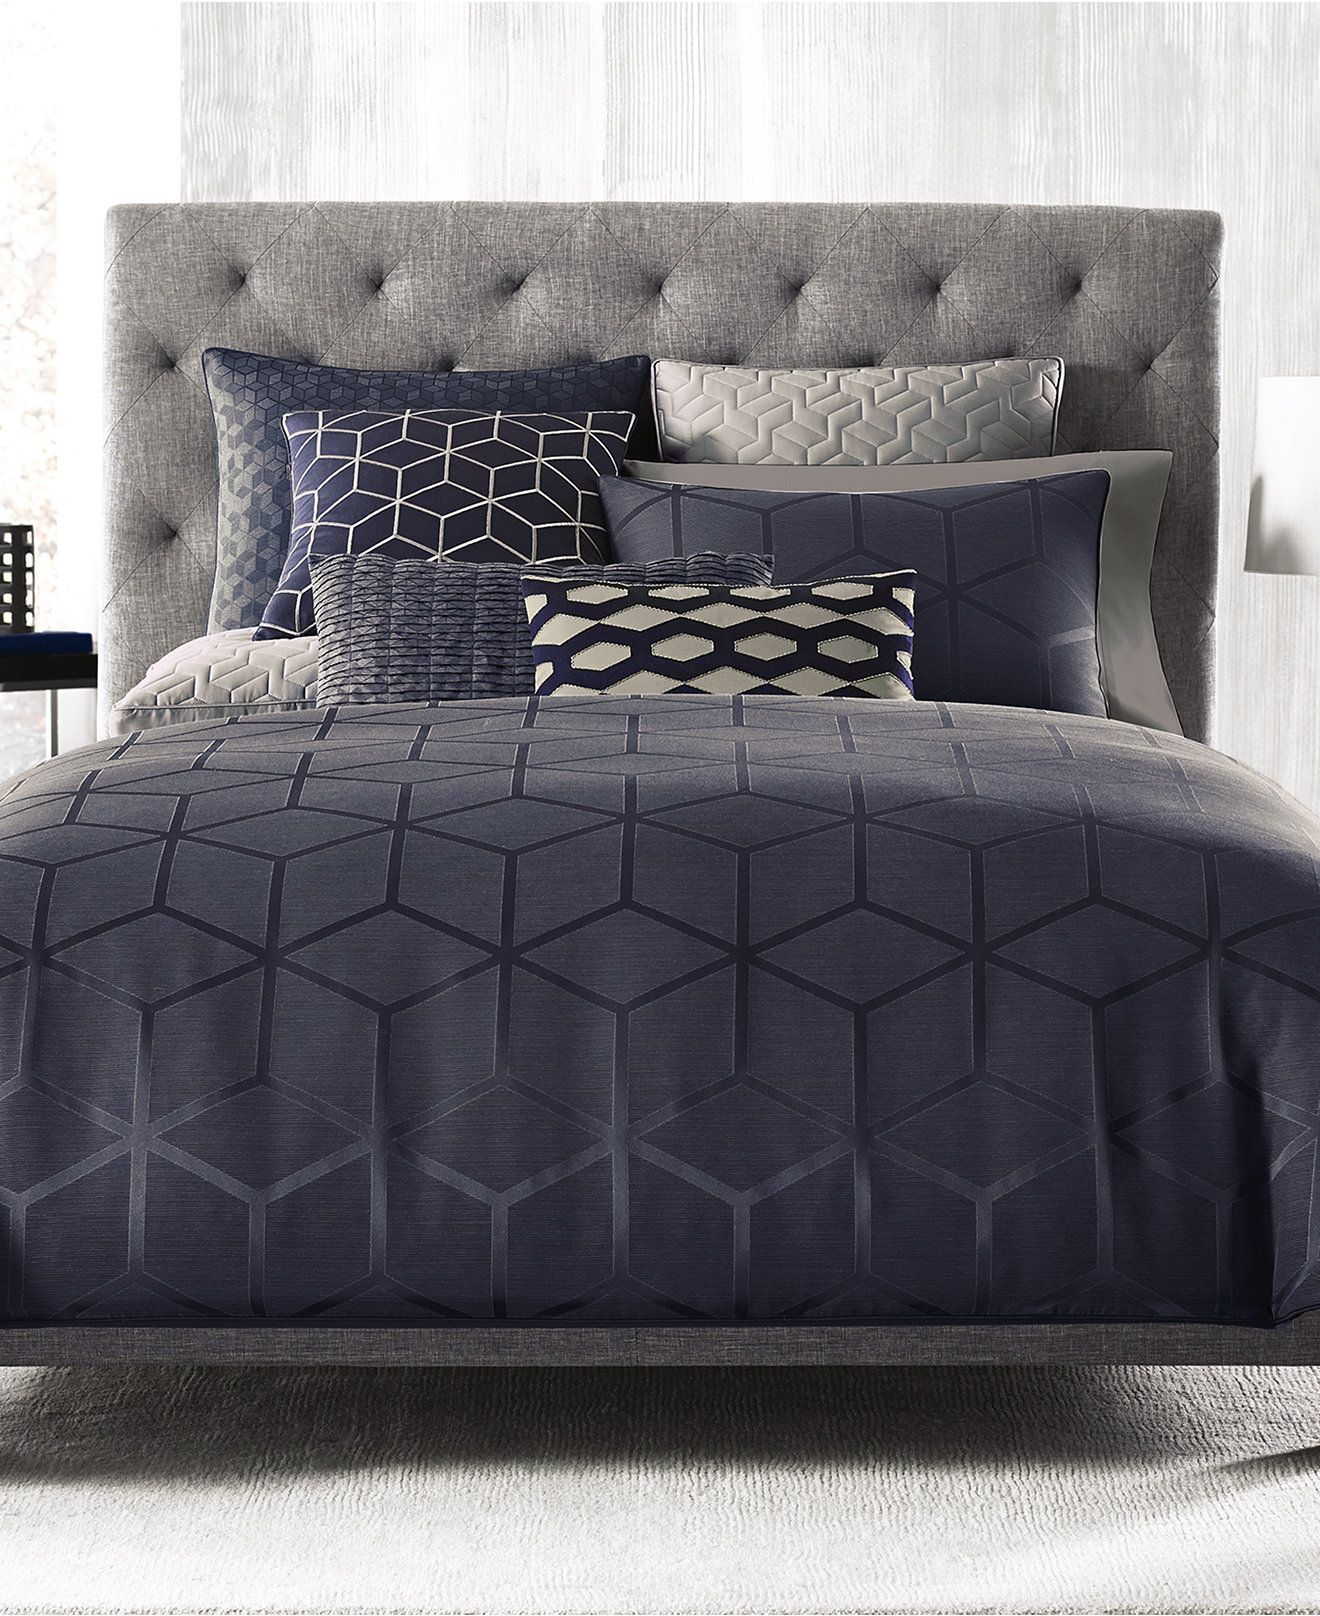 pictures collections bedding reviews striking outlet ralphng sets inspirations large chaps ebay store comforter paisley size capri white of isle lauren ralph bed set